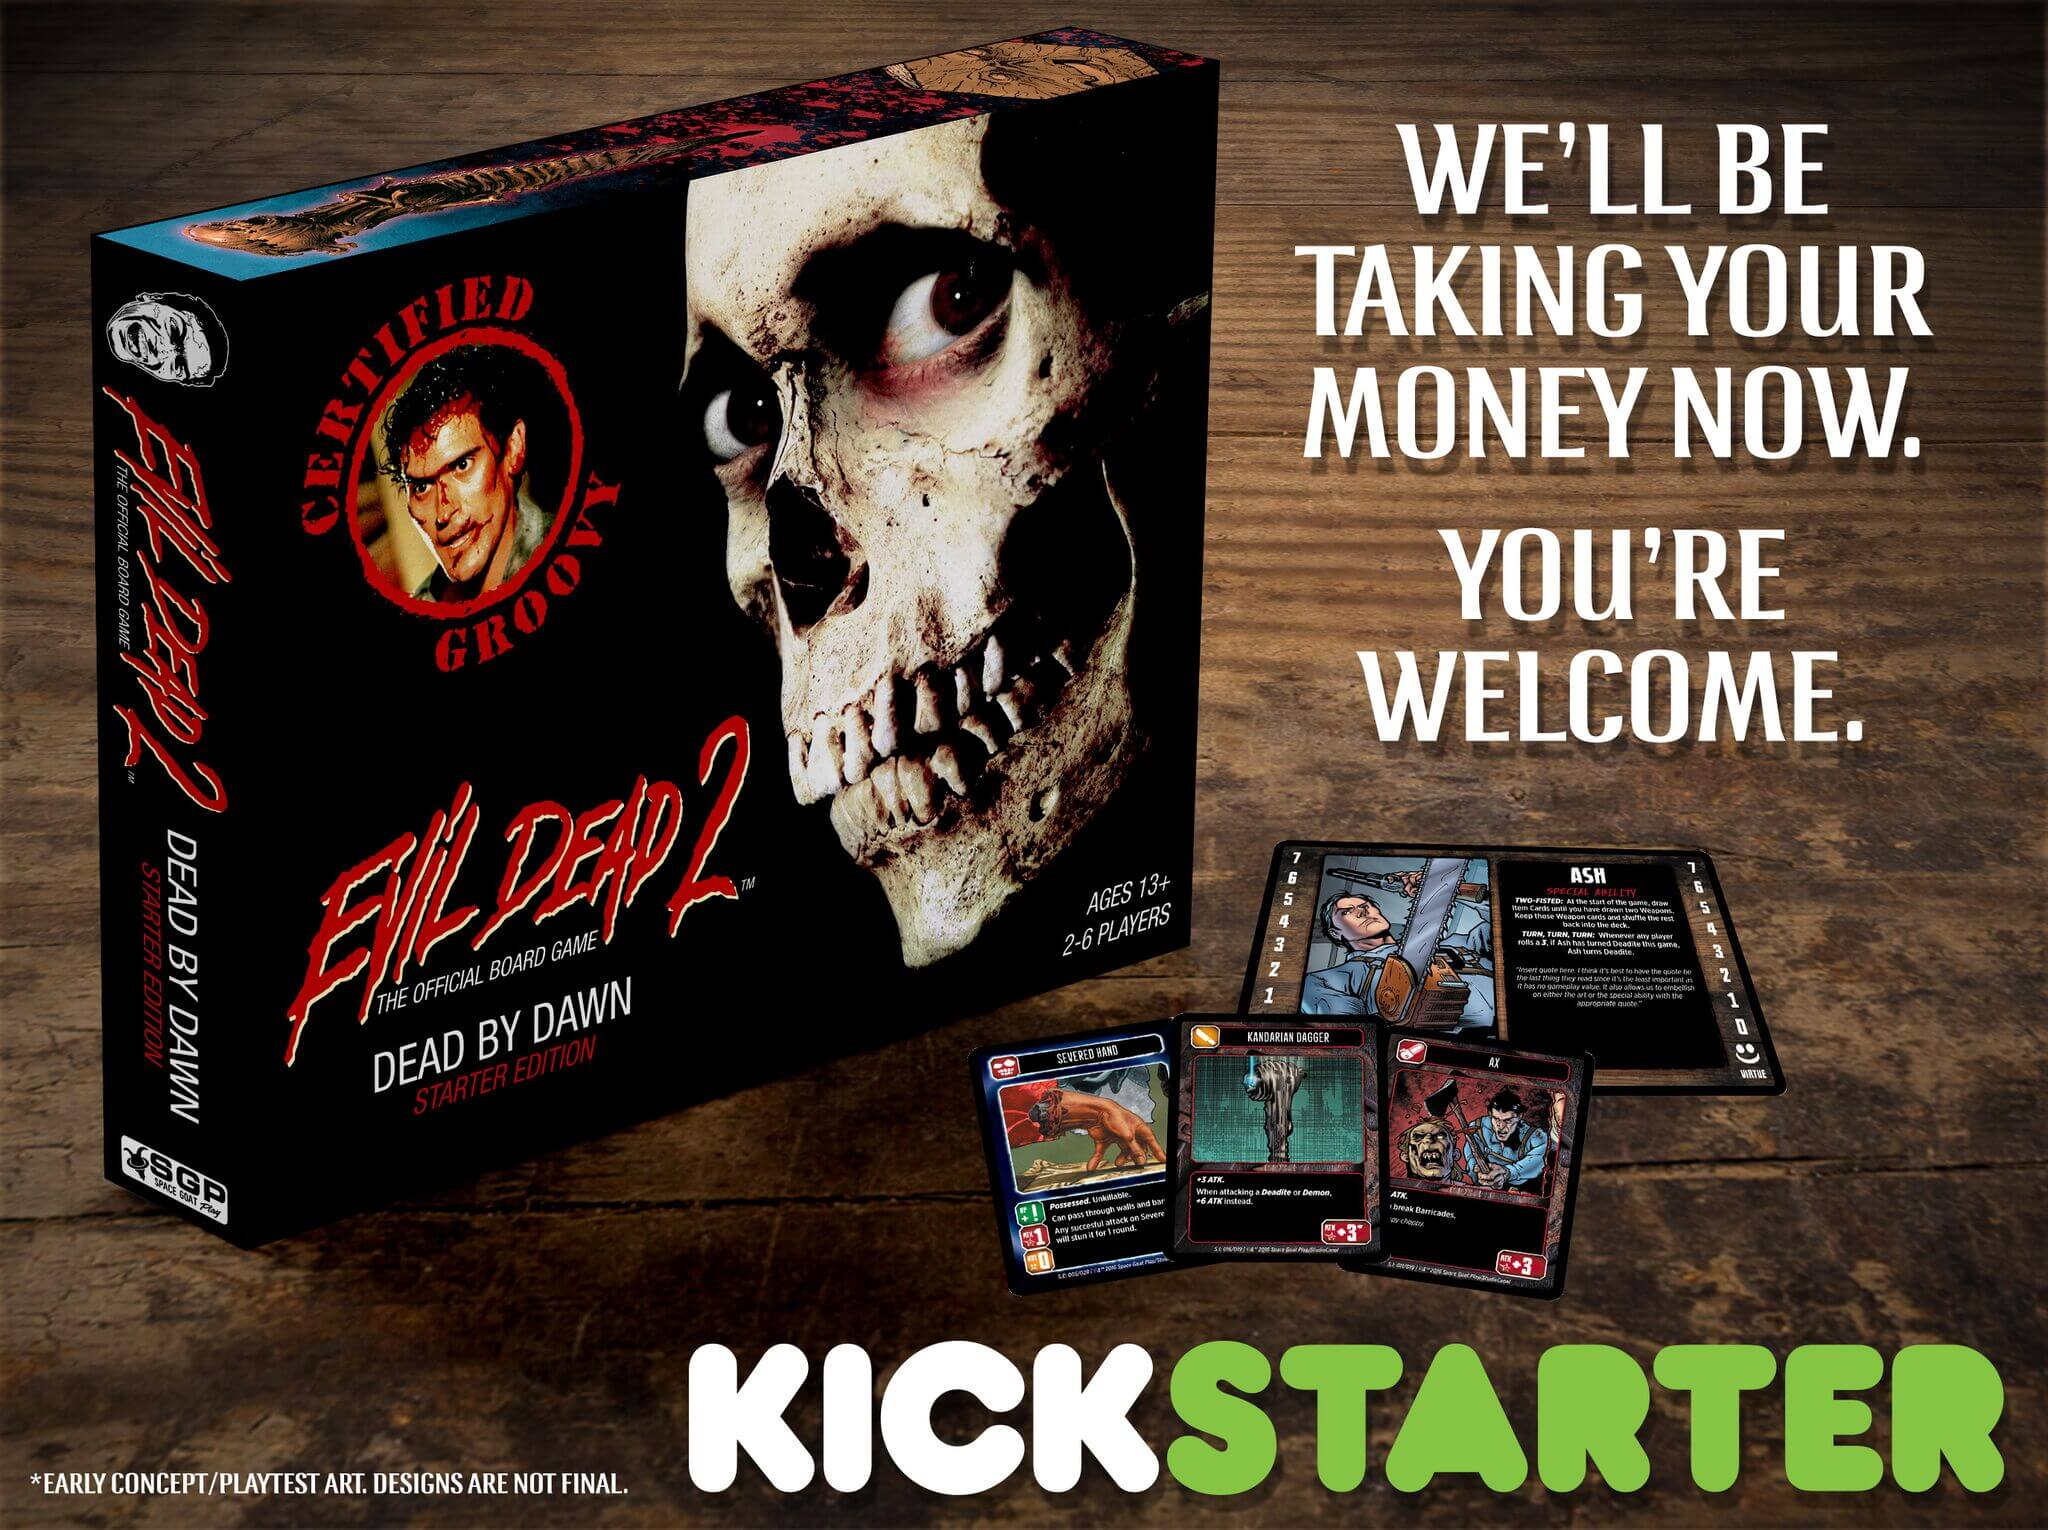 evil dead boardgame6 1 - New Images from the Evil Dead 2 Board Game